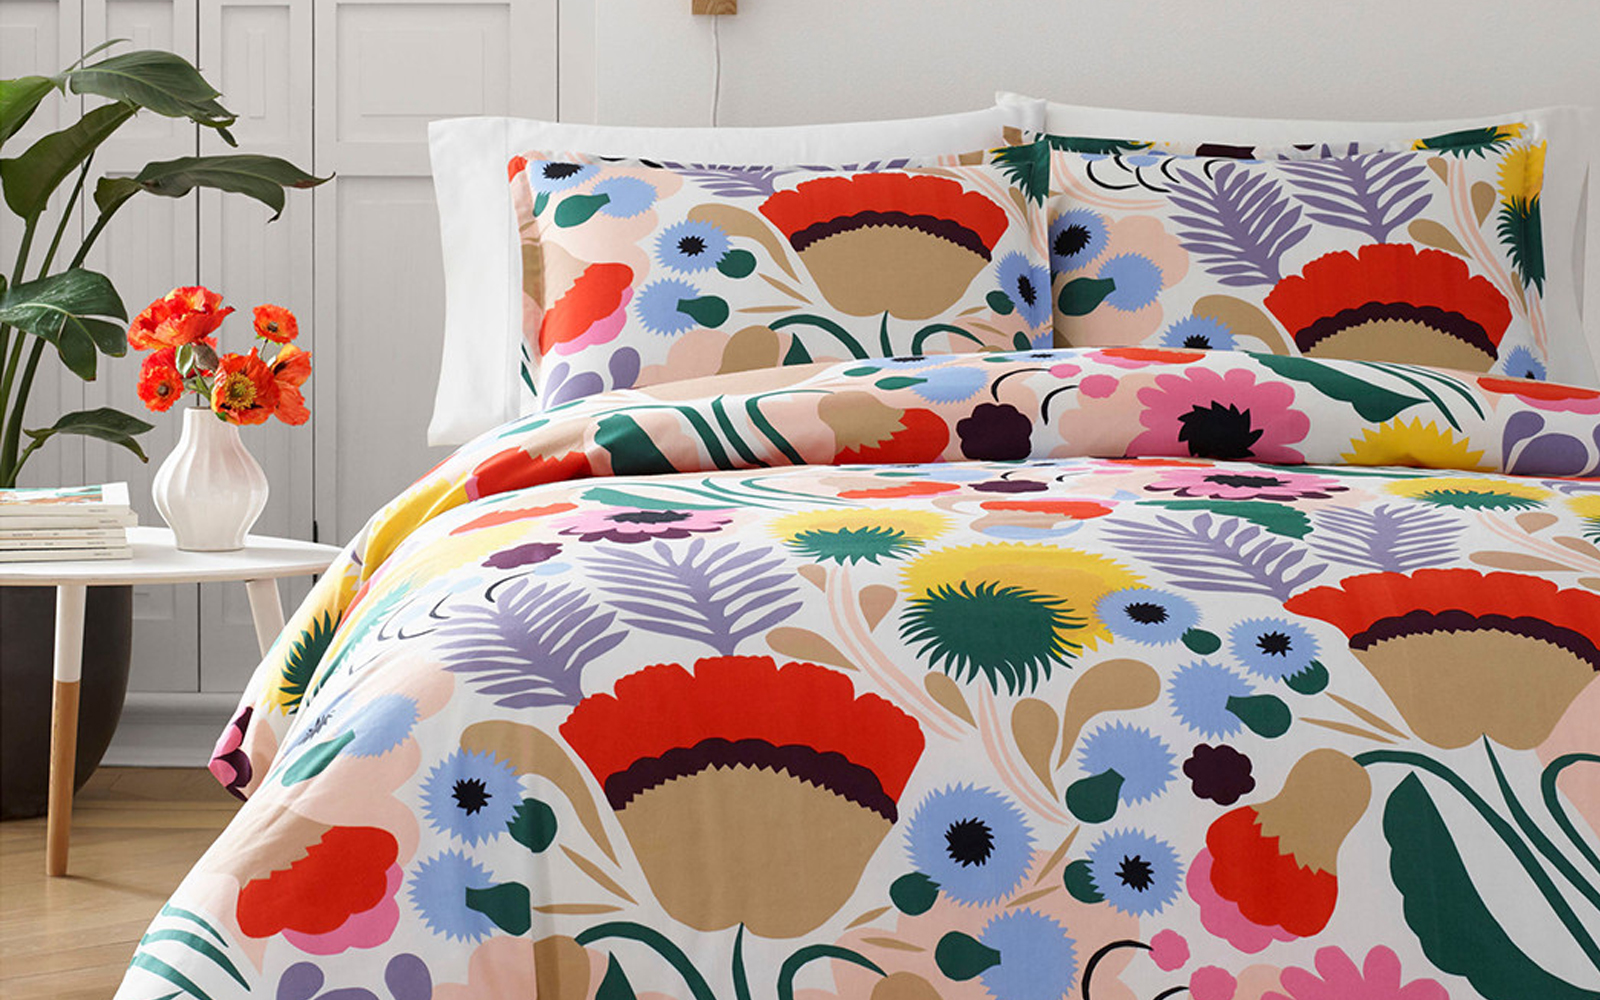 Bedding from Gilt